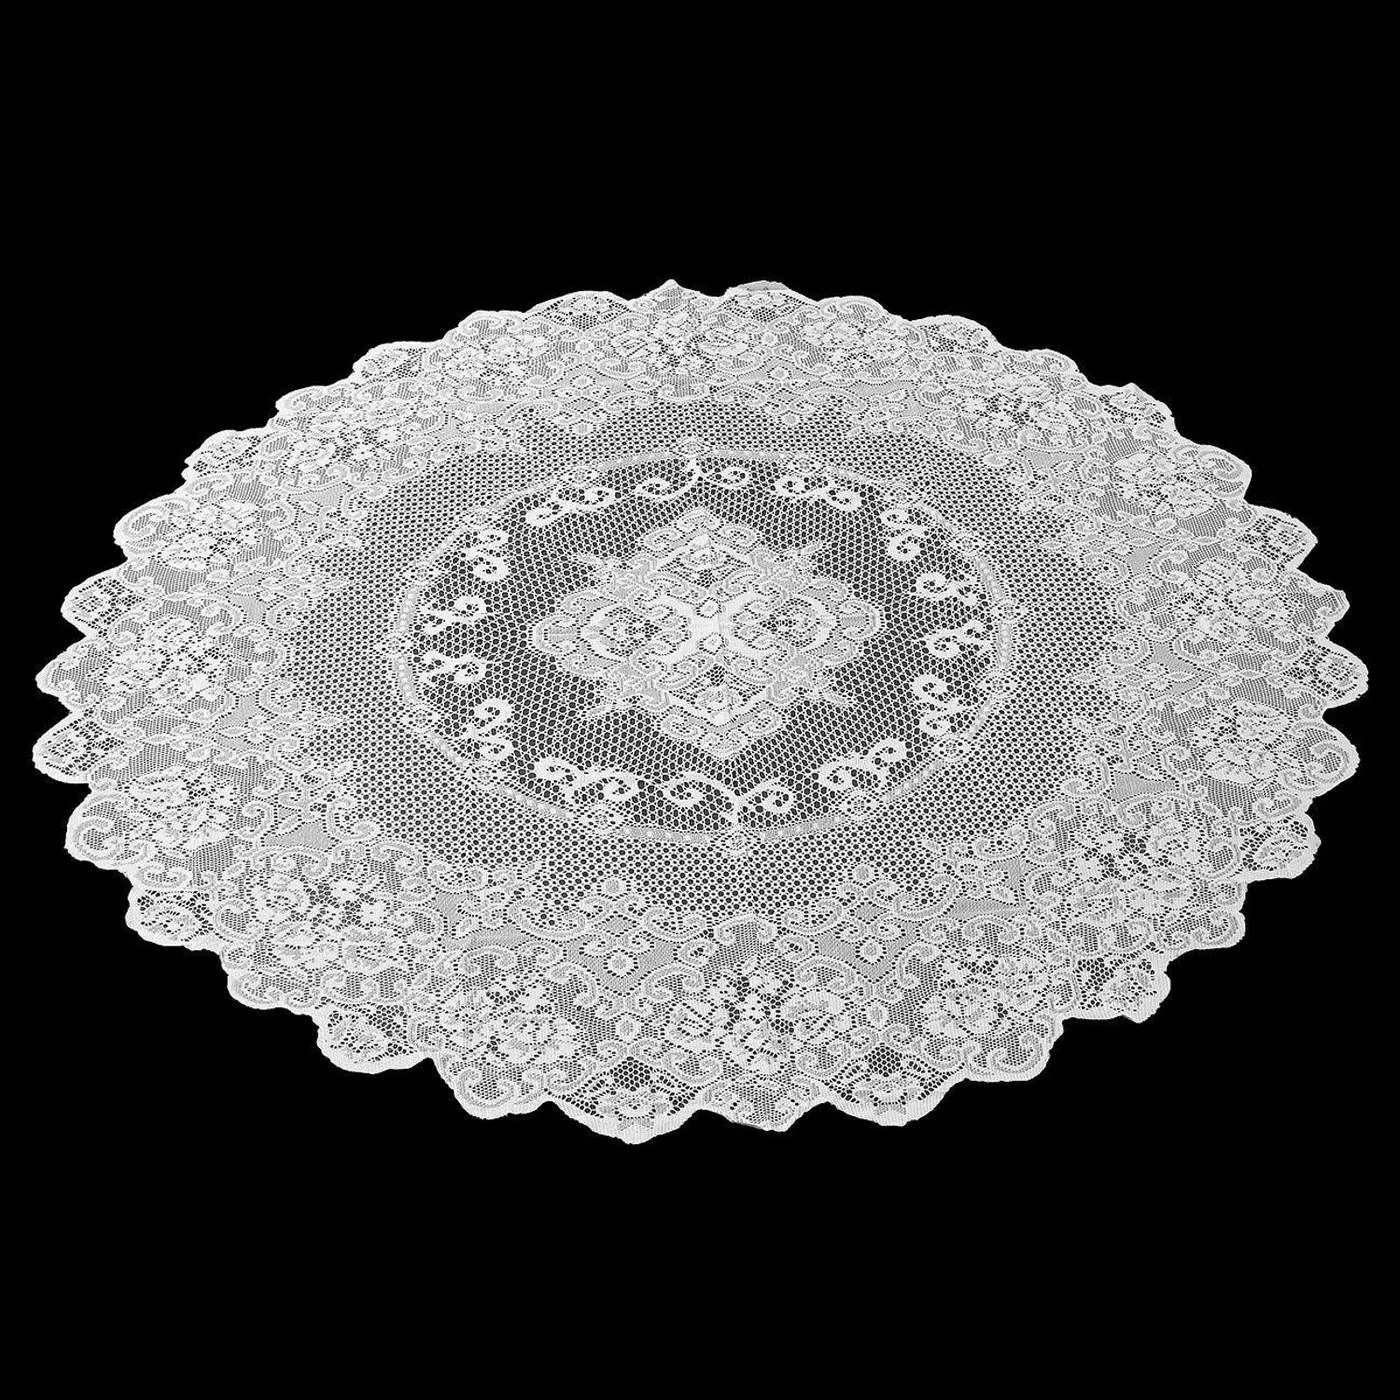 The lace tablecloth